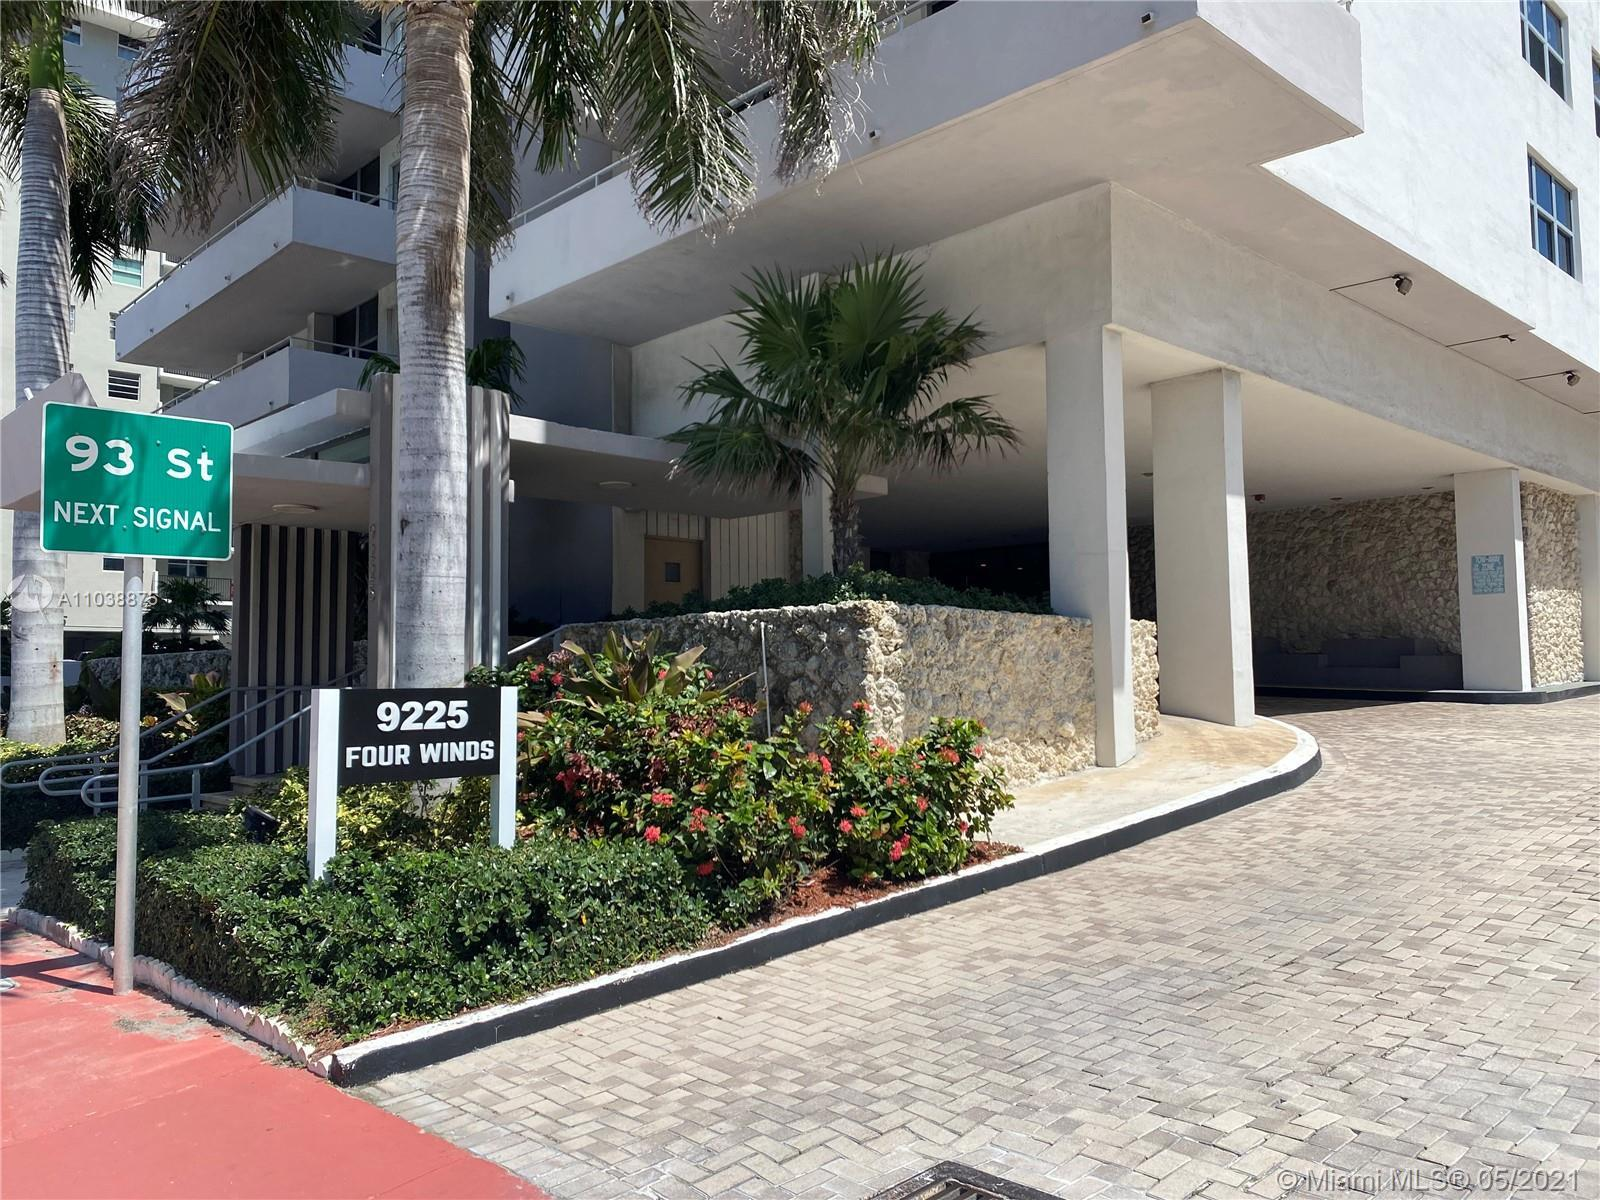 Oceanfront Building, 1 BR, 1.5 Bathrooms in Surfside, Direct access to the Beach & Pool!!! Best Pric